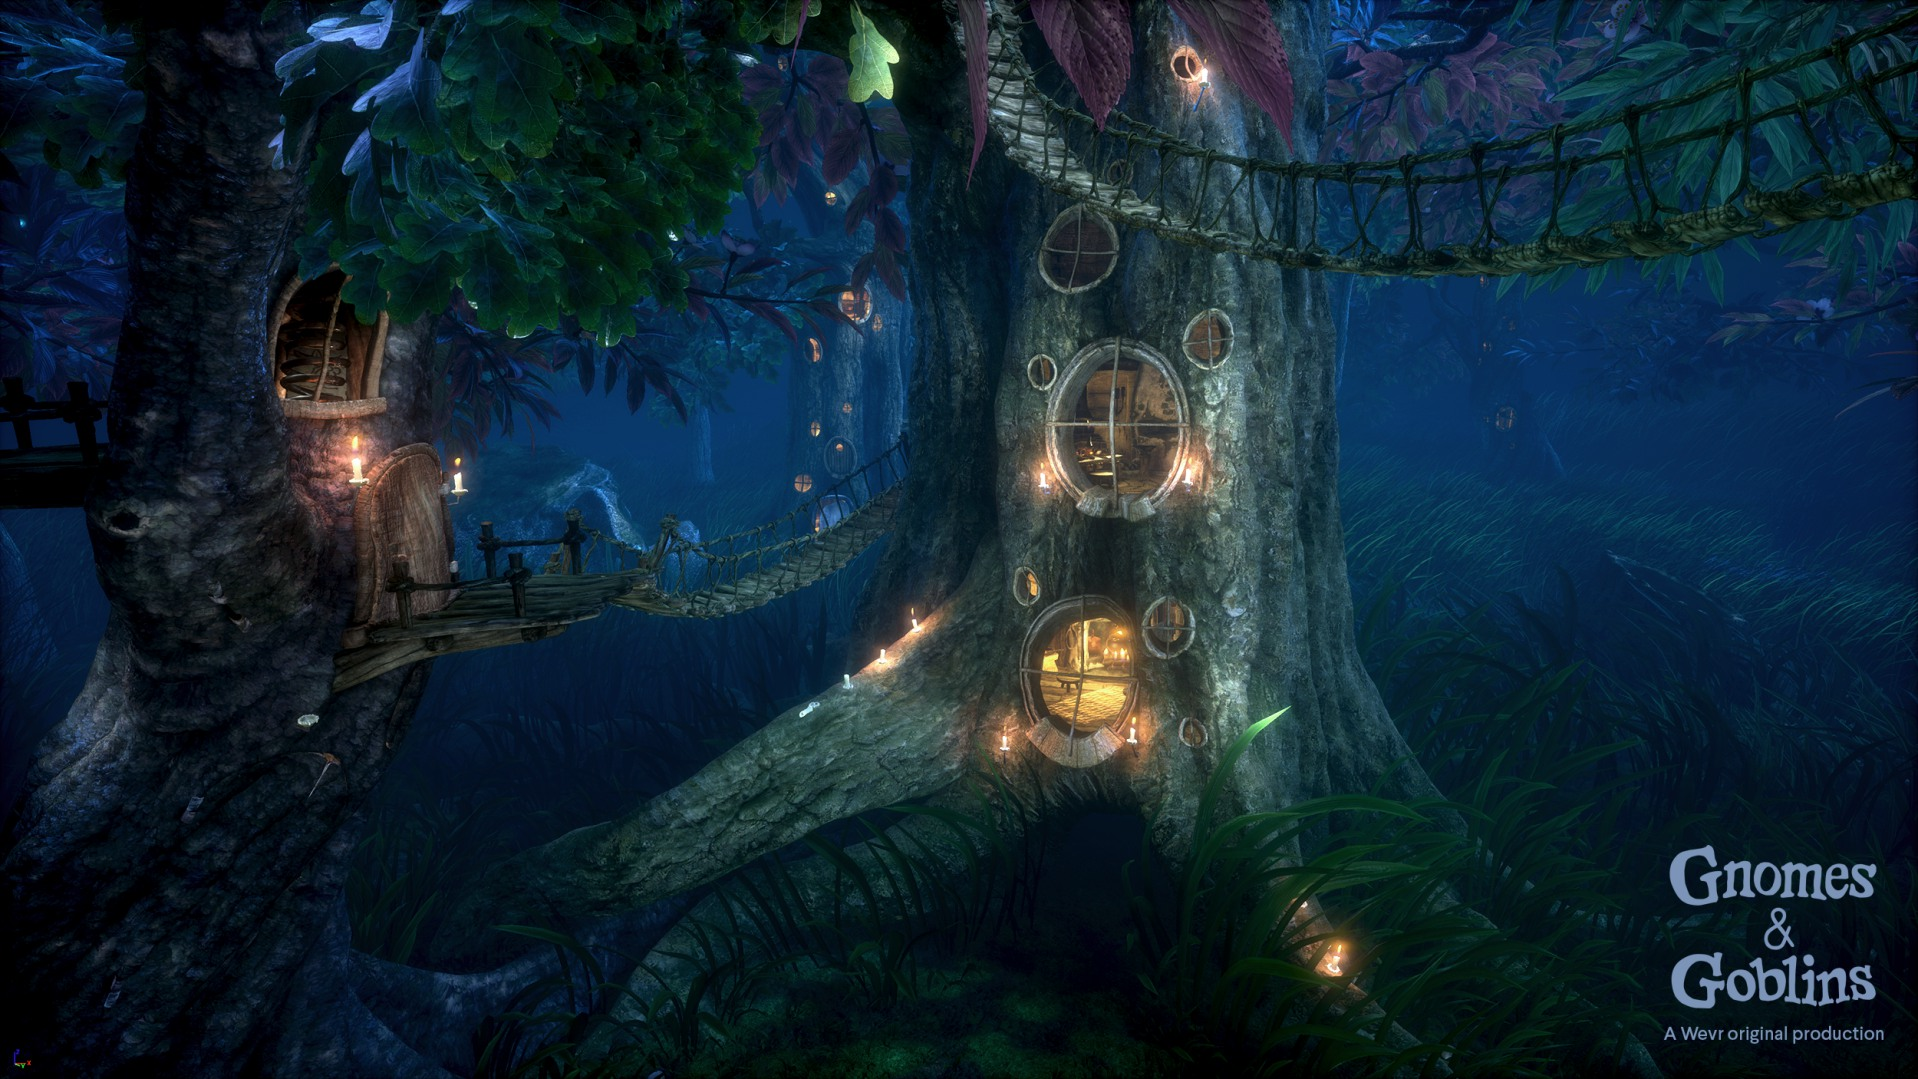 'Lion King' Director's VR Film 'Gnomes & Goblins' is Back From the Dead